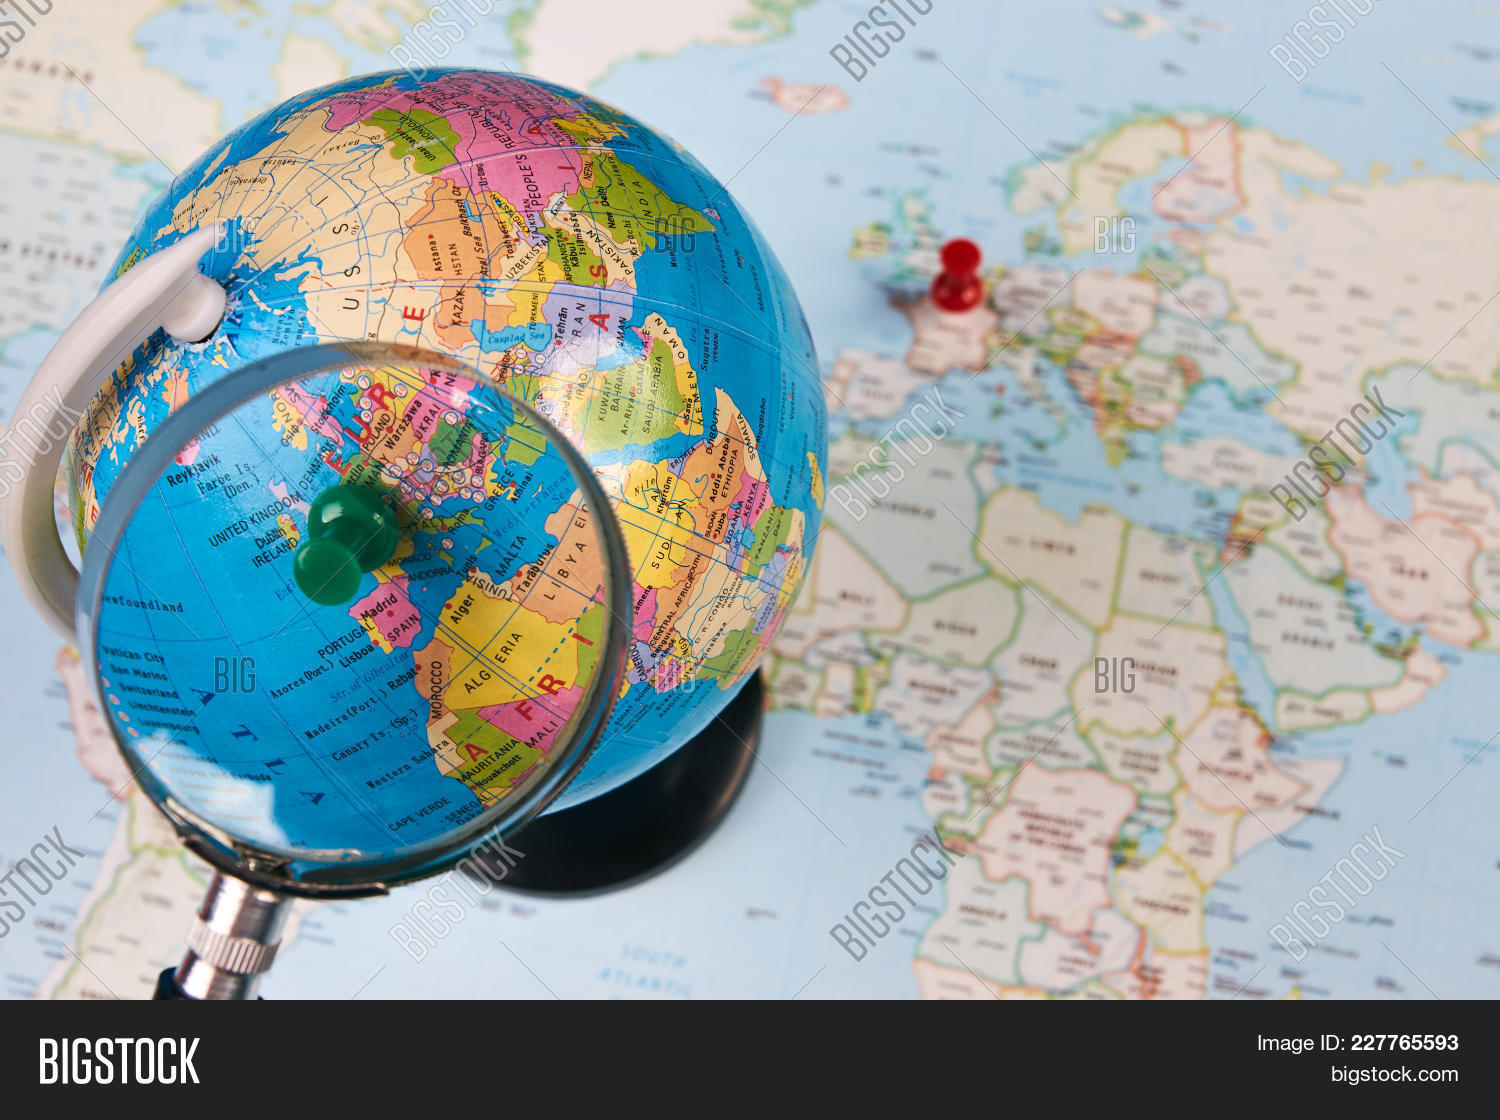 Planing Travel France Image & Photo (Free Trial) | Bigstock